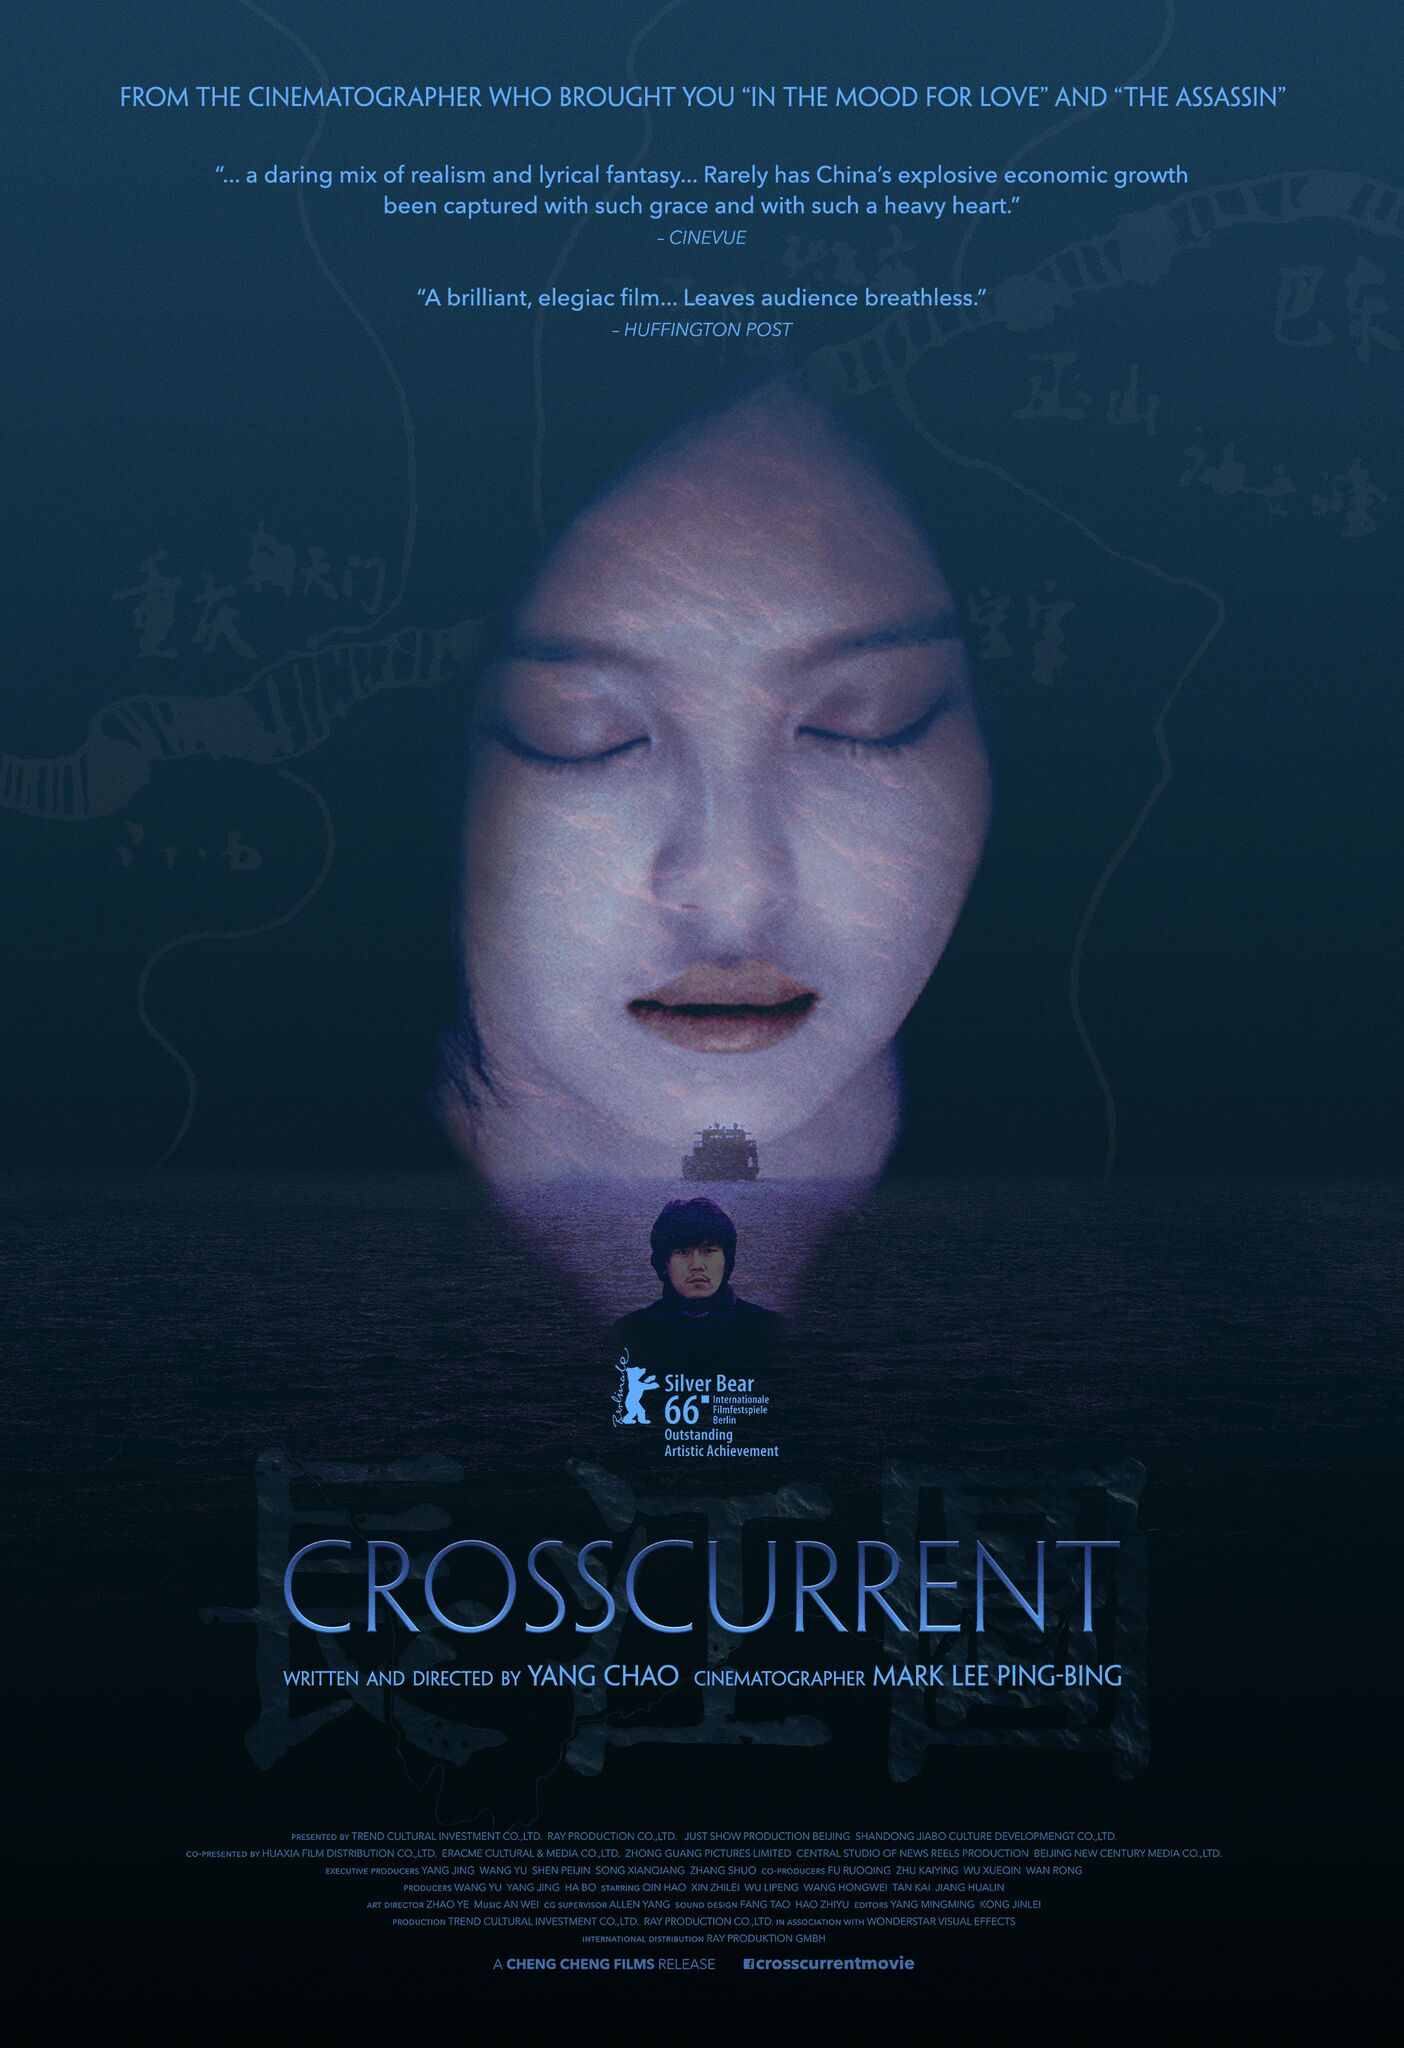 Crosscurrent Image